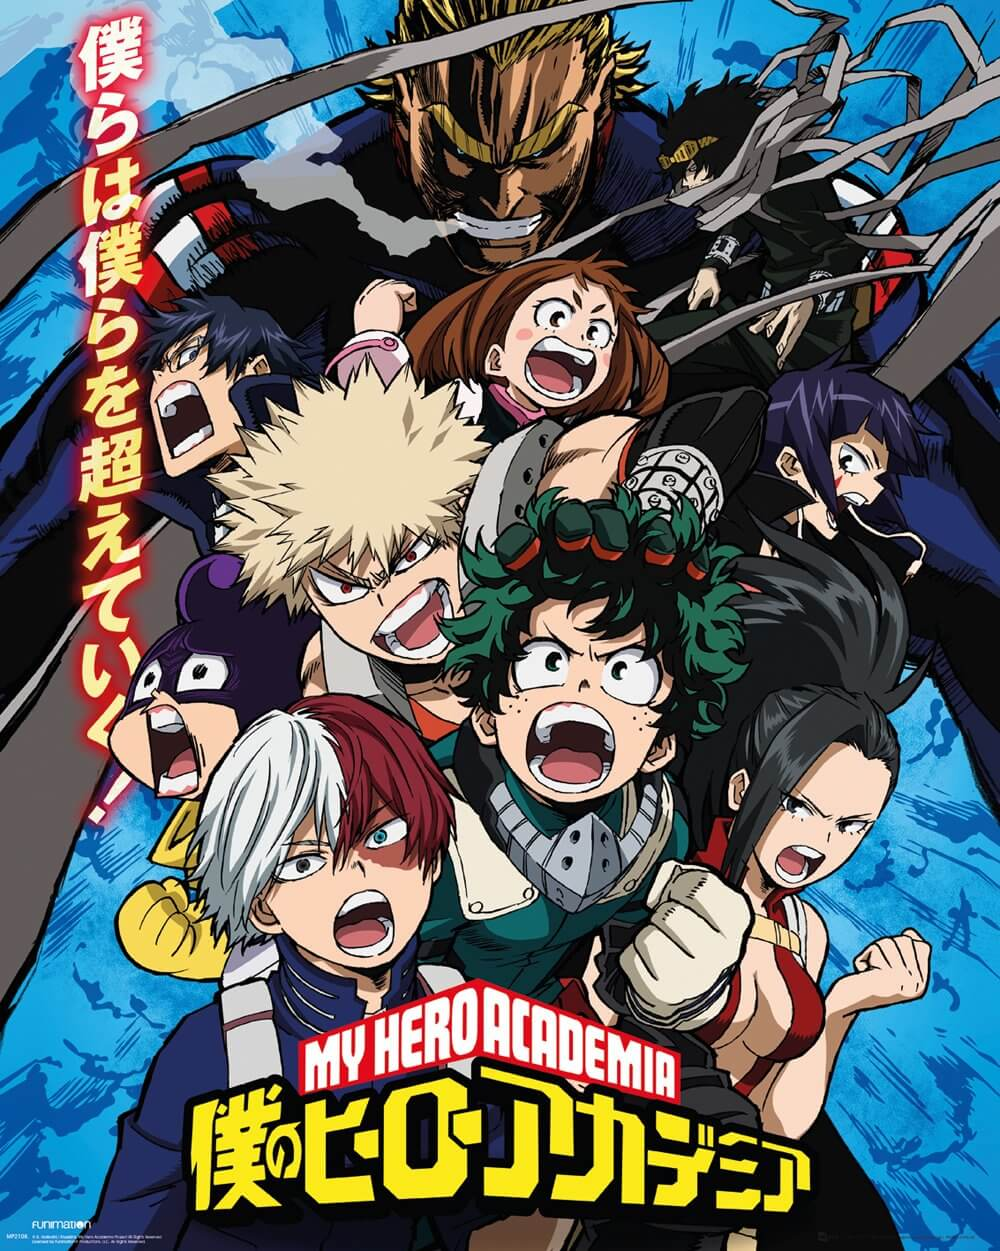 my hero academia streaming 2020